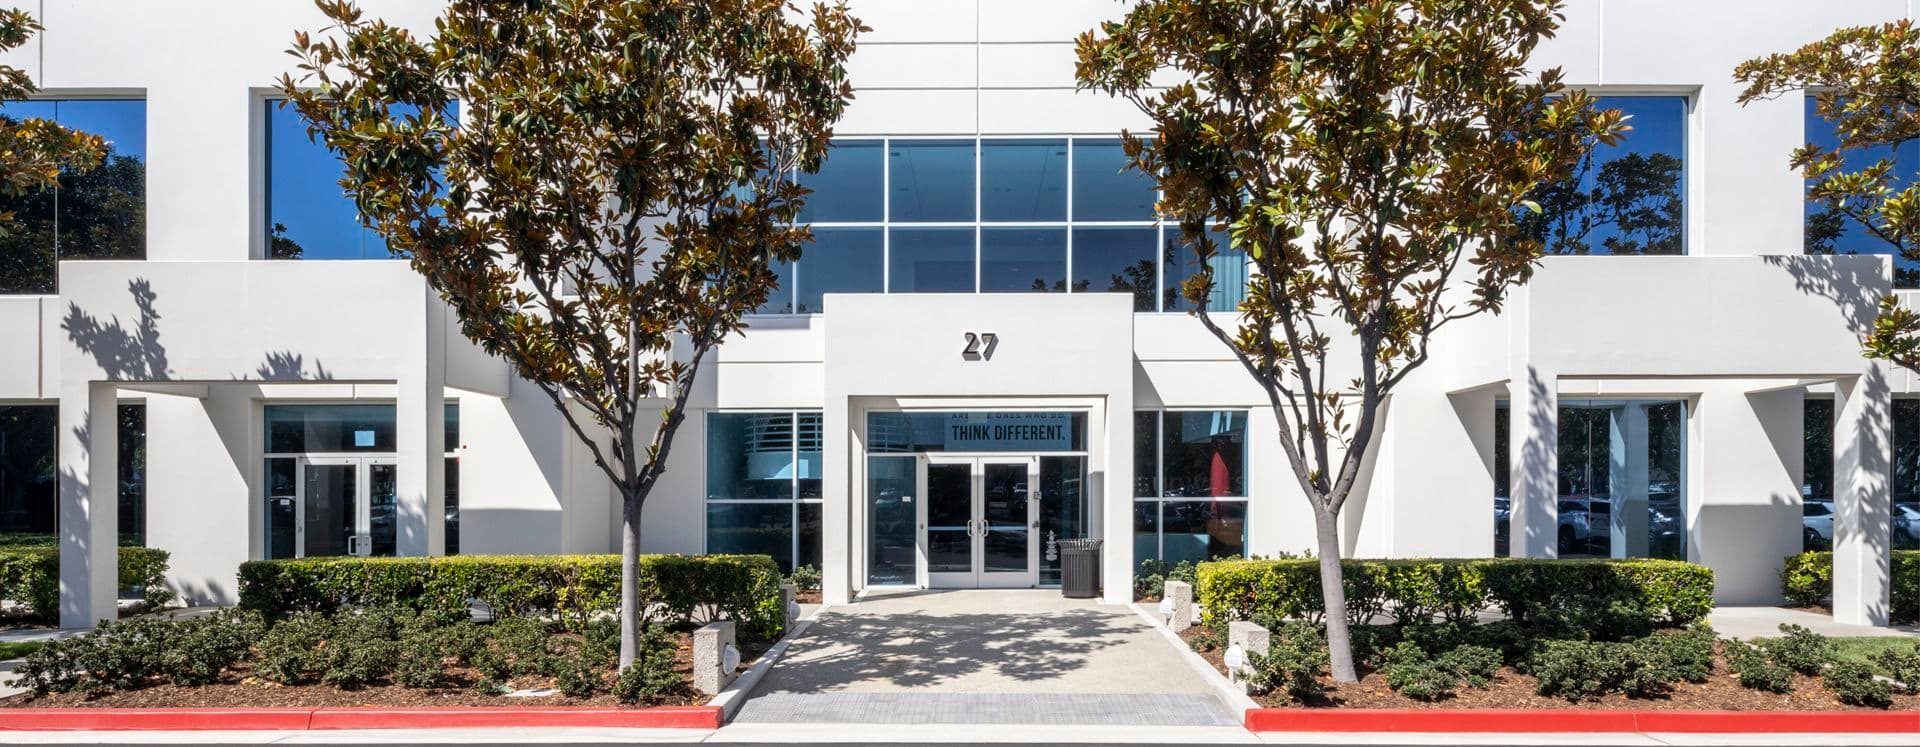 Building hero photography of 27 Technology in Irvine, CA